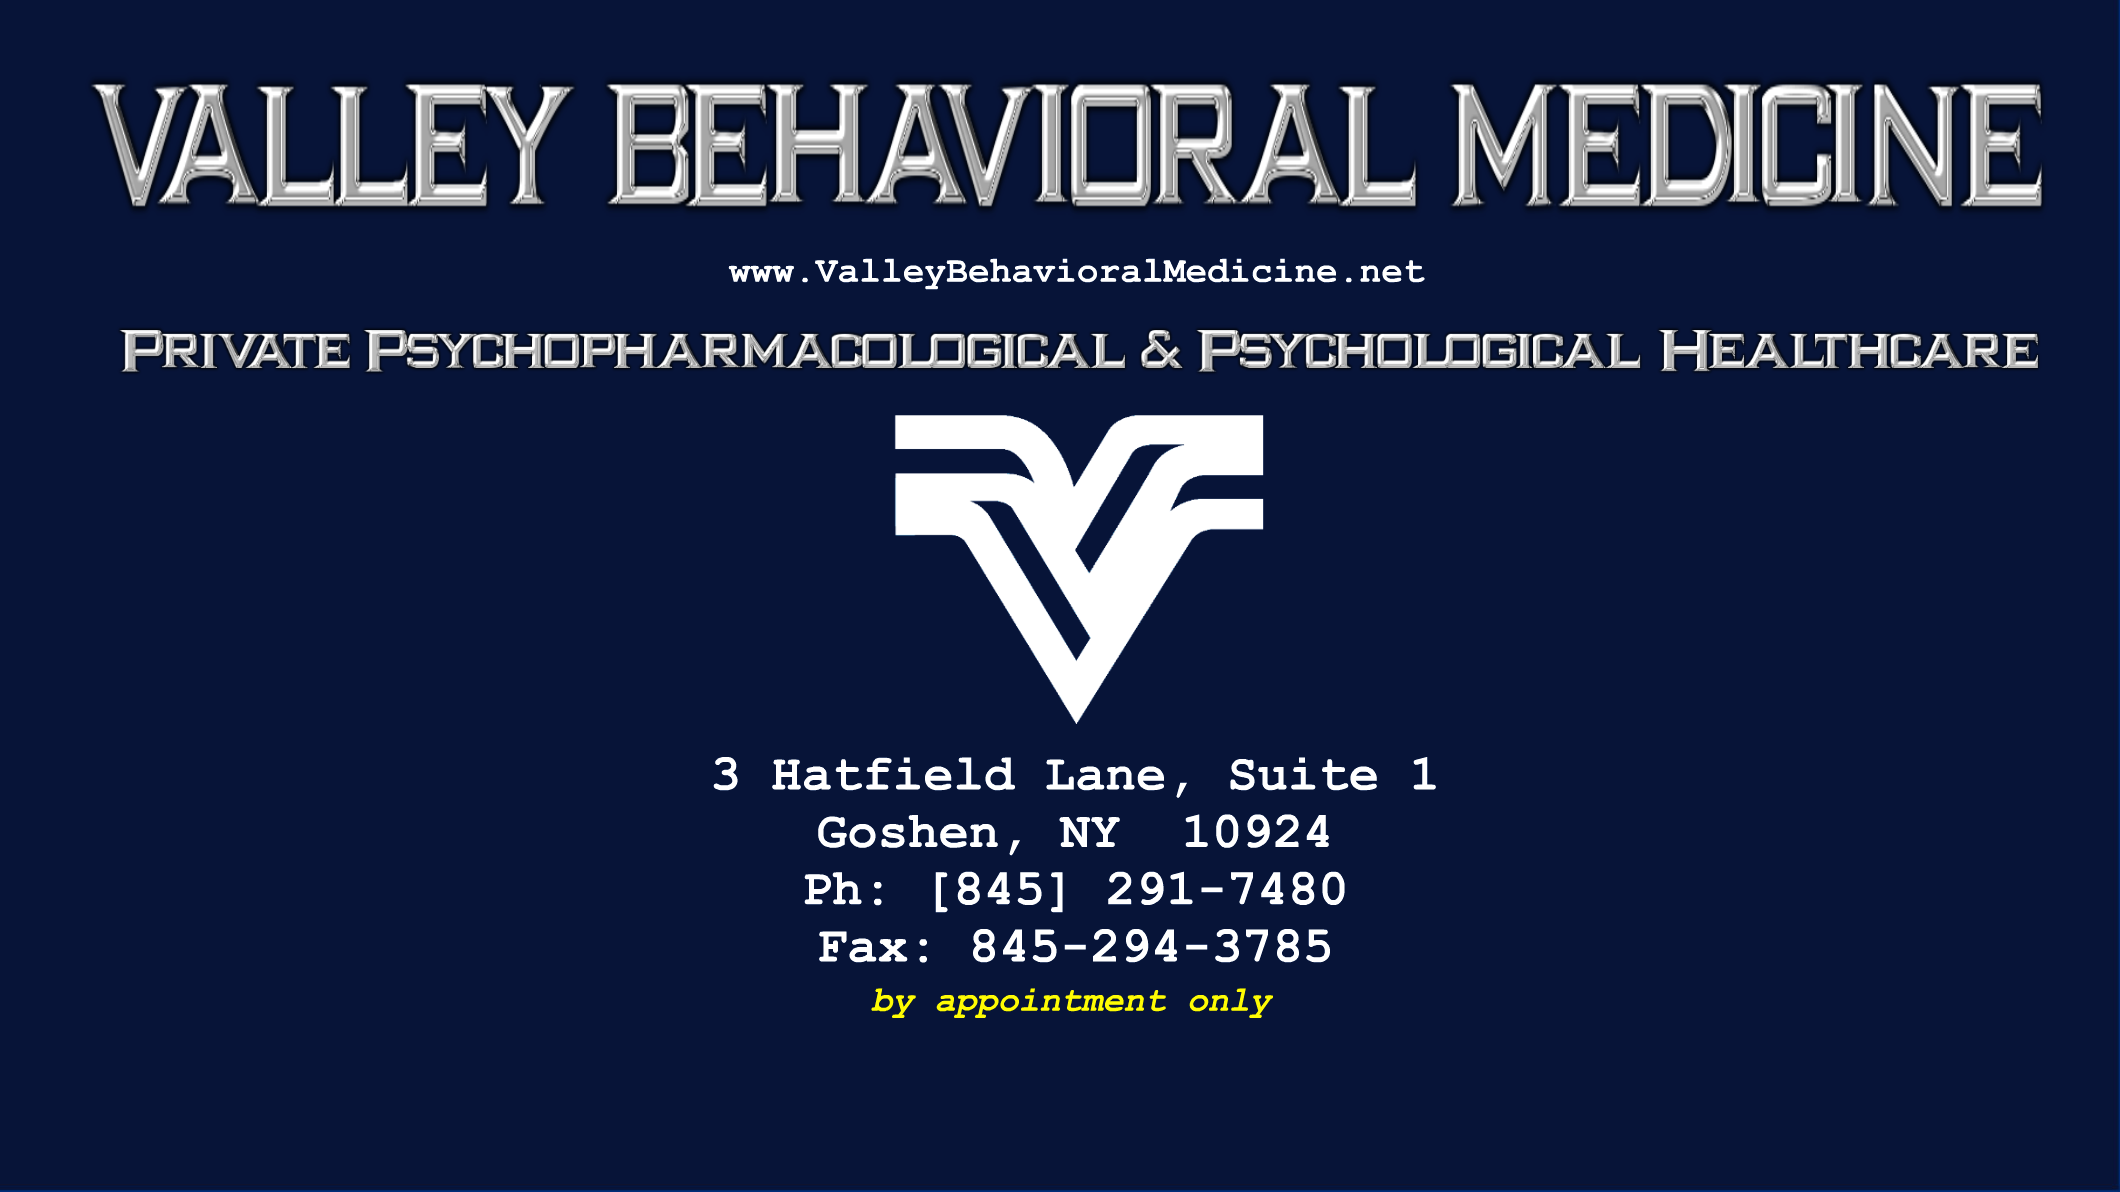 Valley Behavioral Medicine [VBM] is an Orange County, New